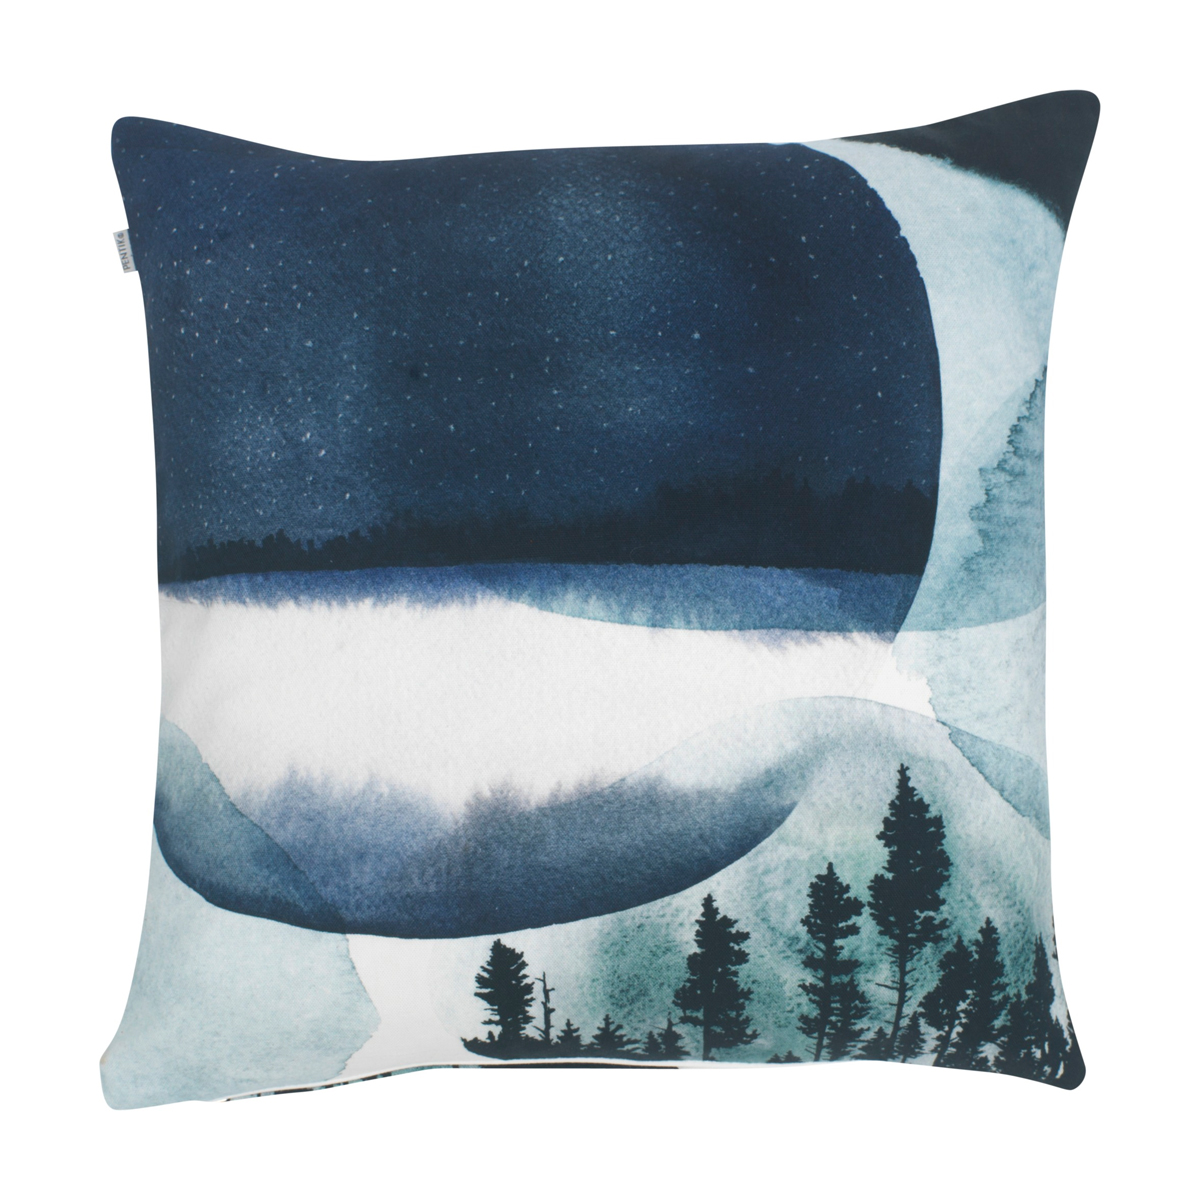 Pentik Maisema Blue Throw Pillow - Finnish Pillows & Blankets